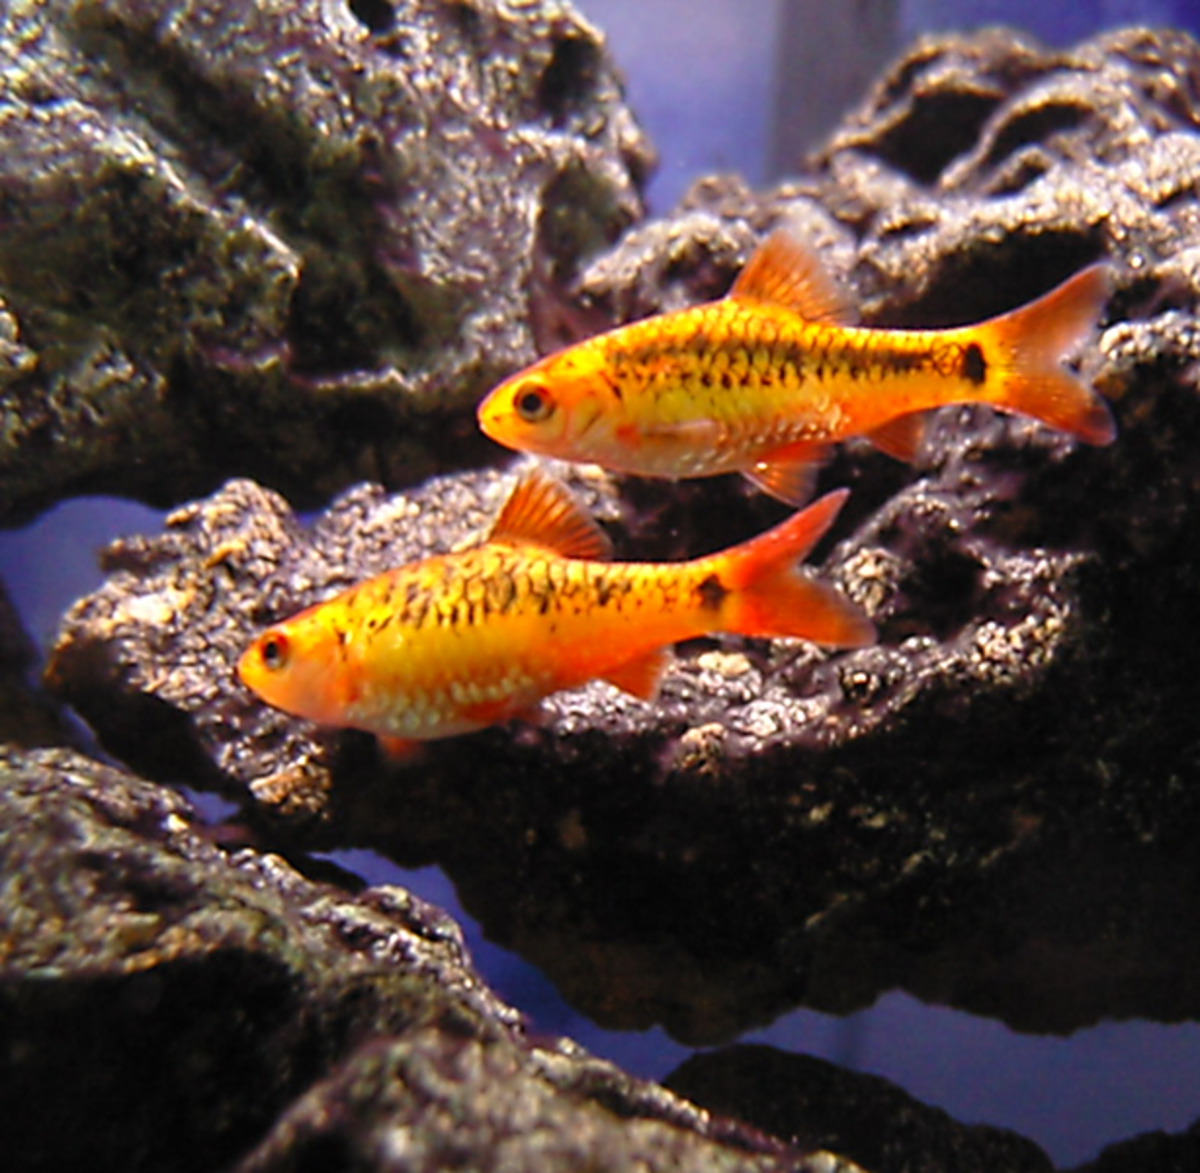 Gold Barbs, Cherry Barbs and other Barb species